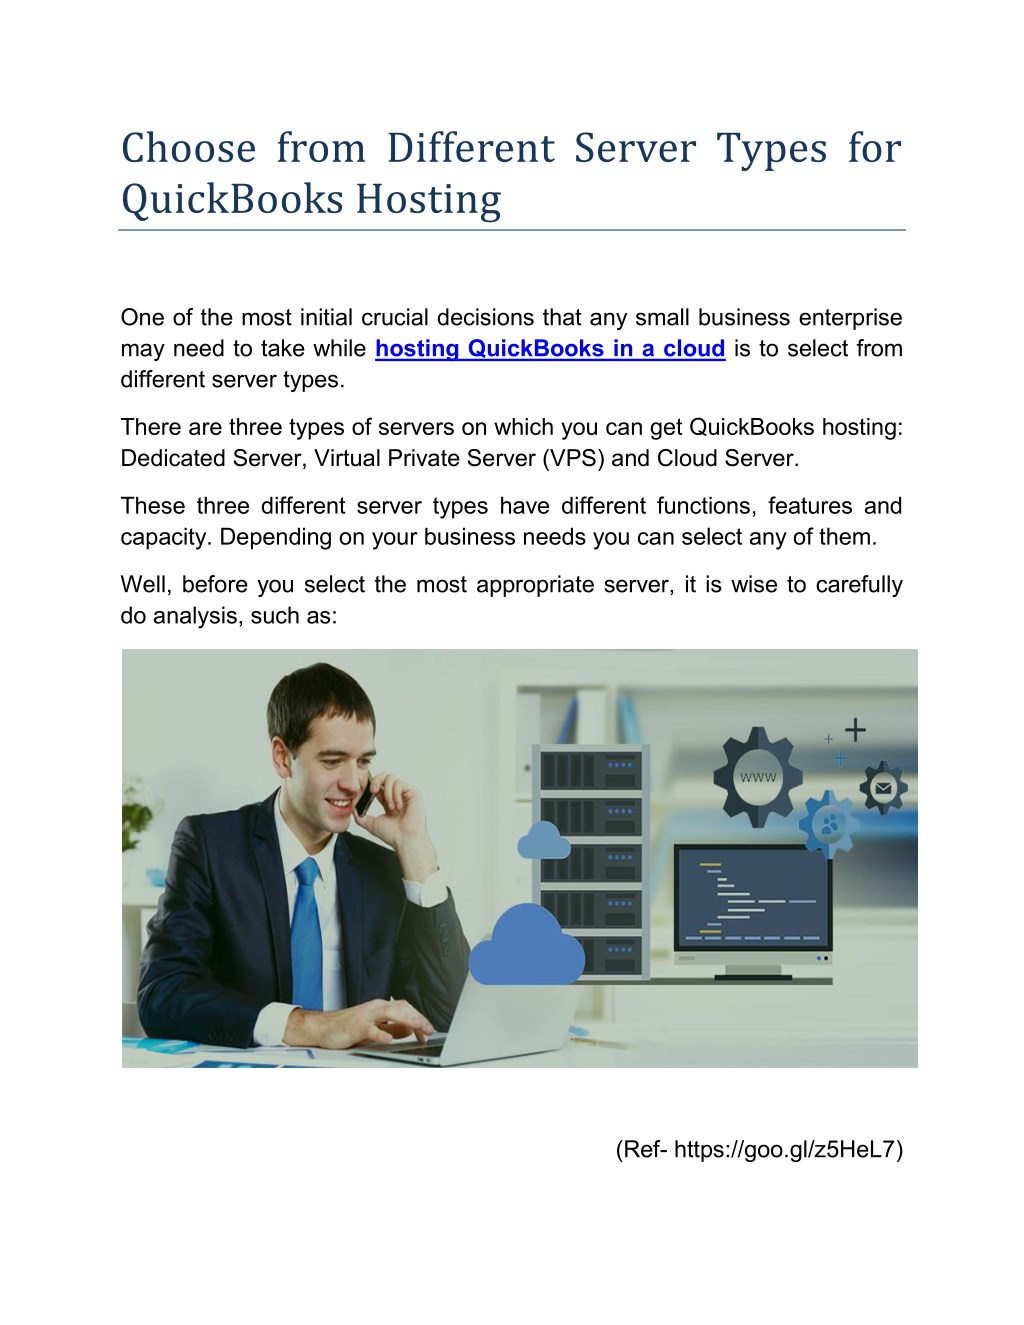 Ppt Choose From Different Server Types For Quickbooks Hosting